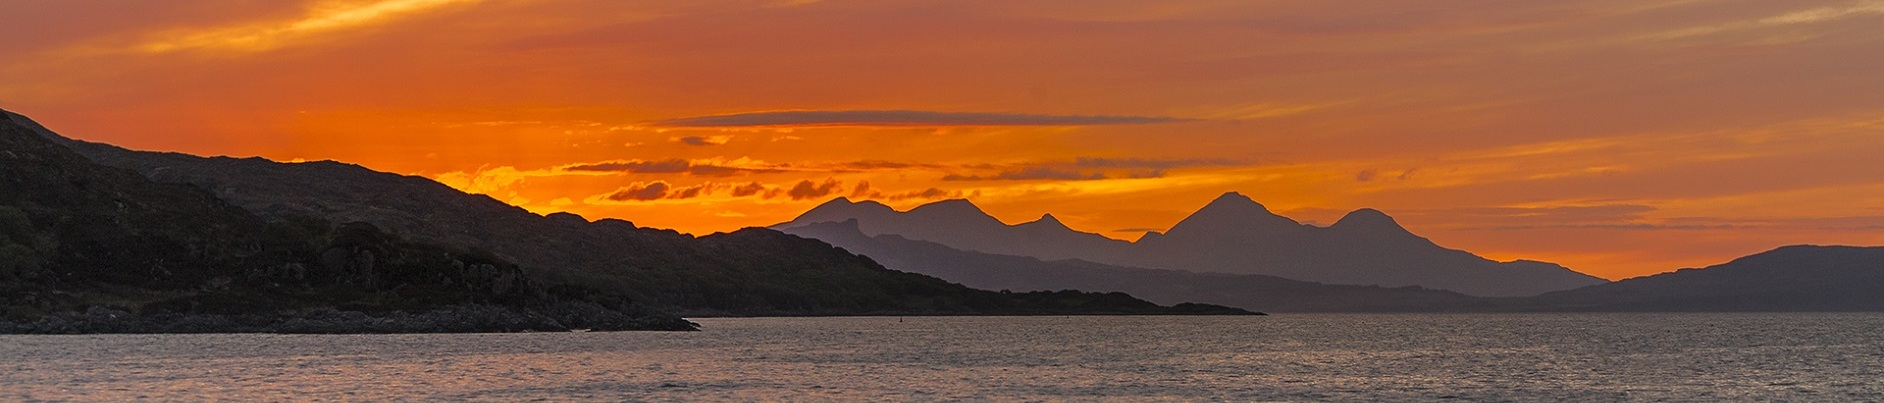 Sunset over the Isle of Rum